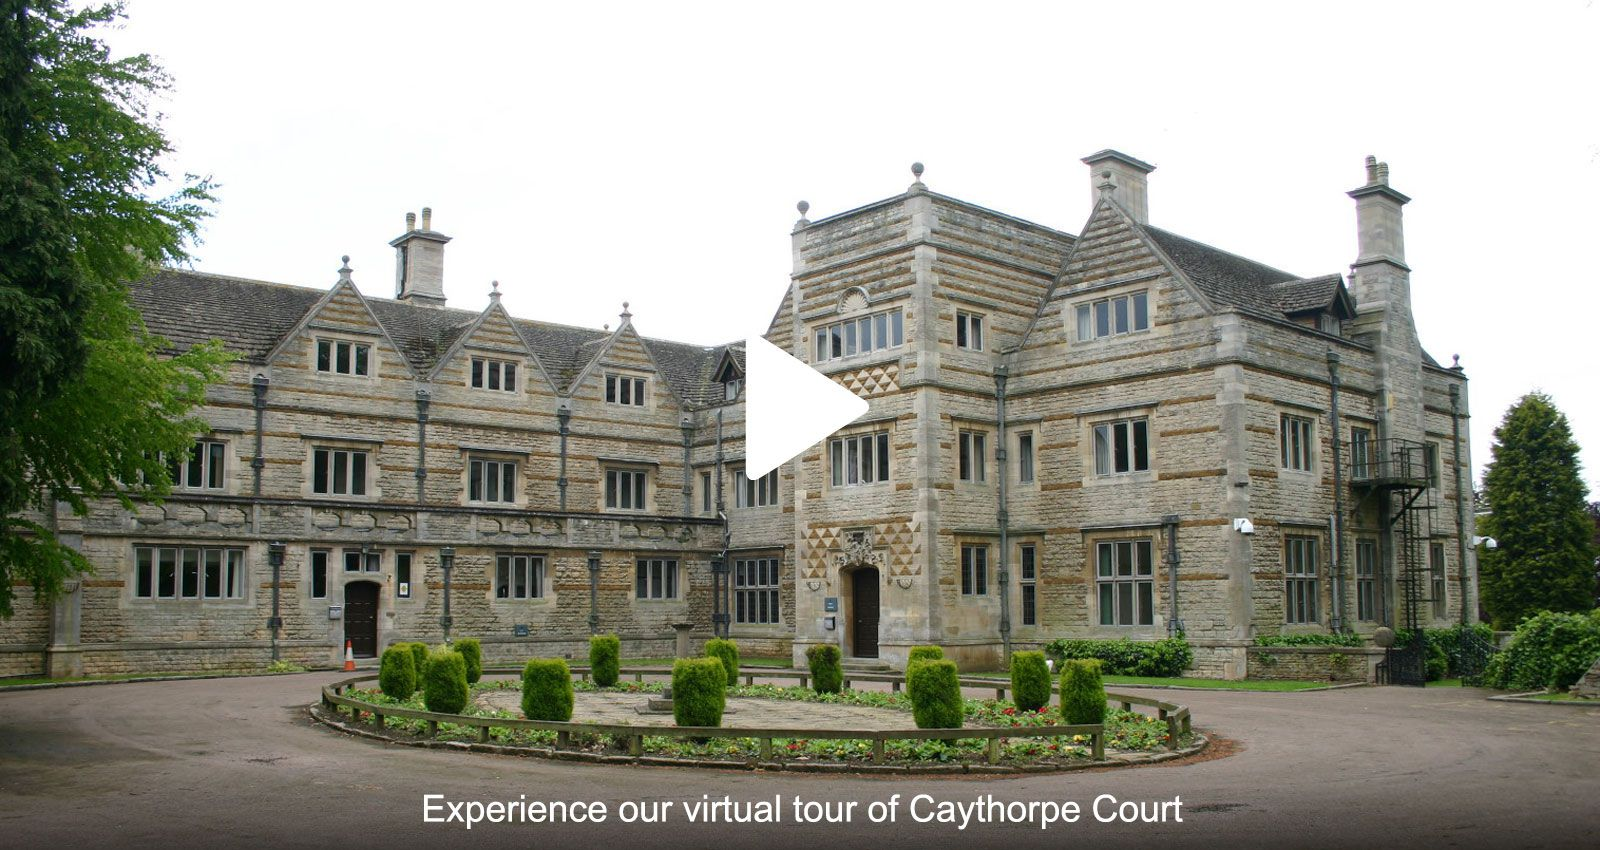 Family adventures at Caythorpe Court